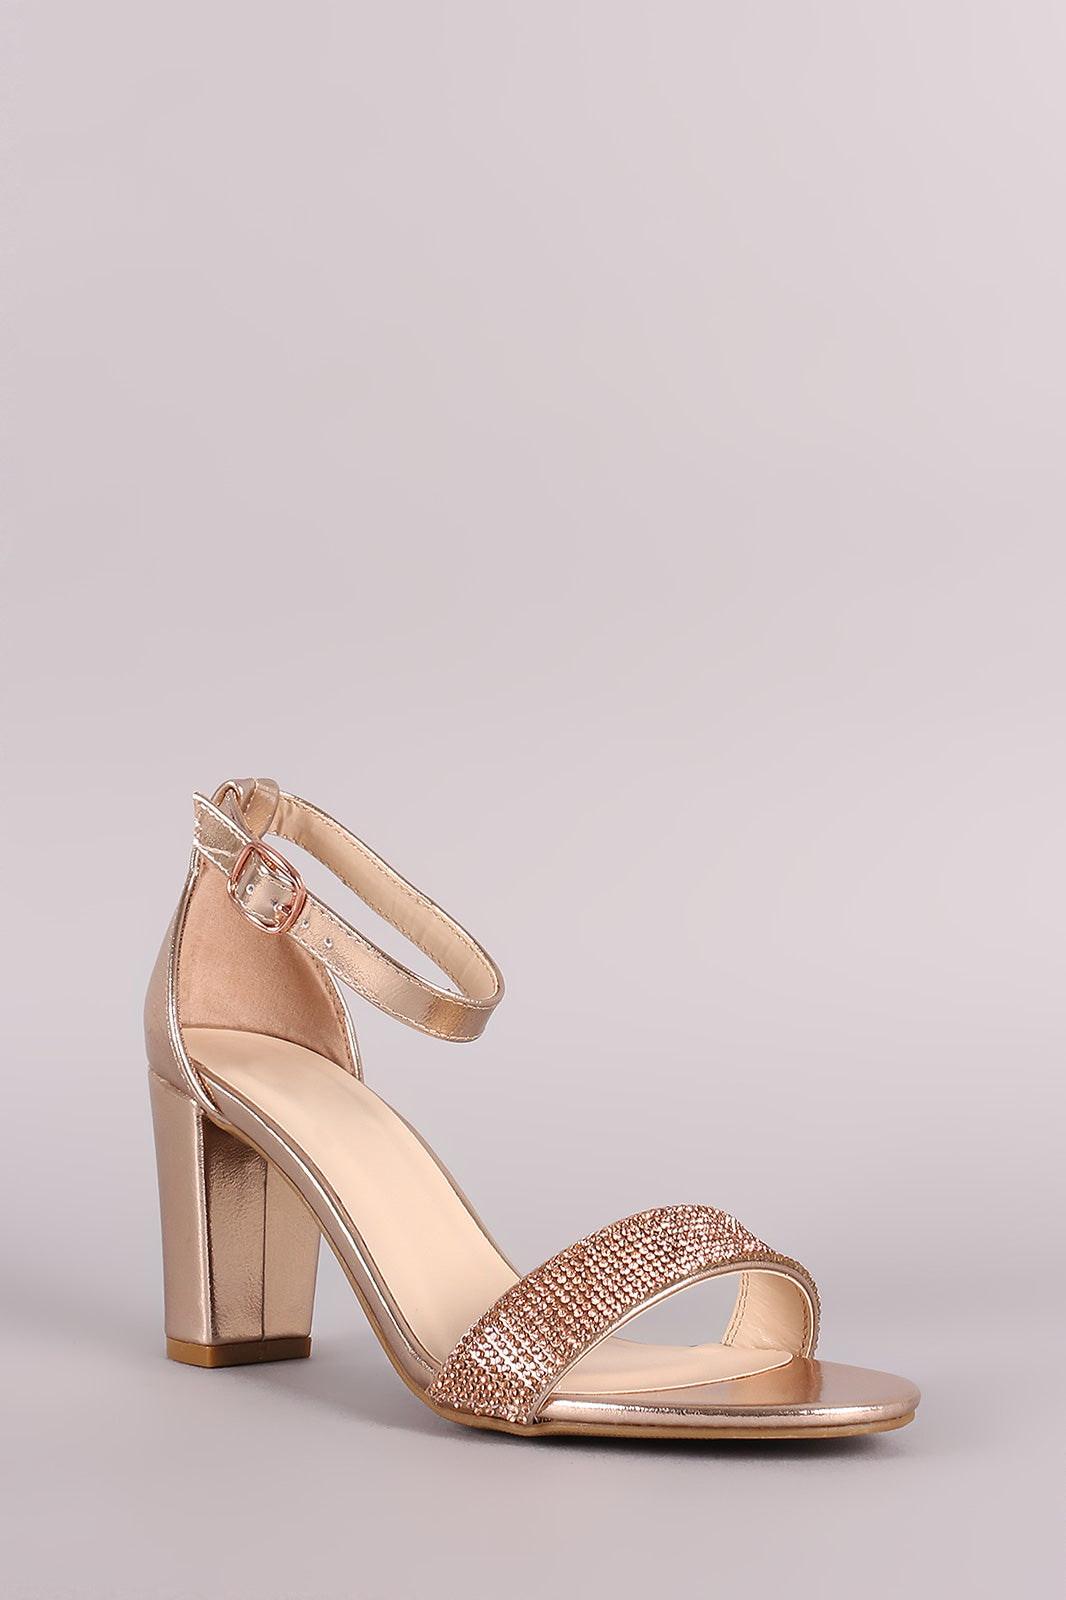 5cd408b8adc Bamboo Striking-14 Rose Gold Open Toe Block Heel with Ankle Strap ...